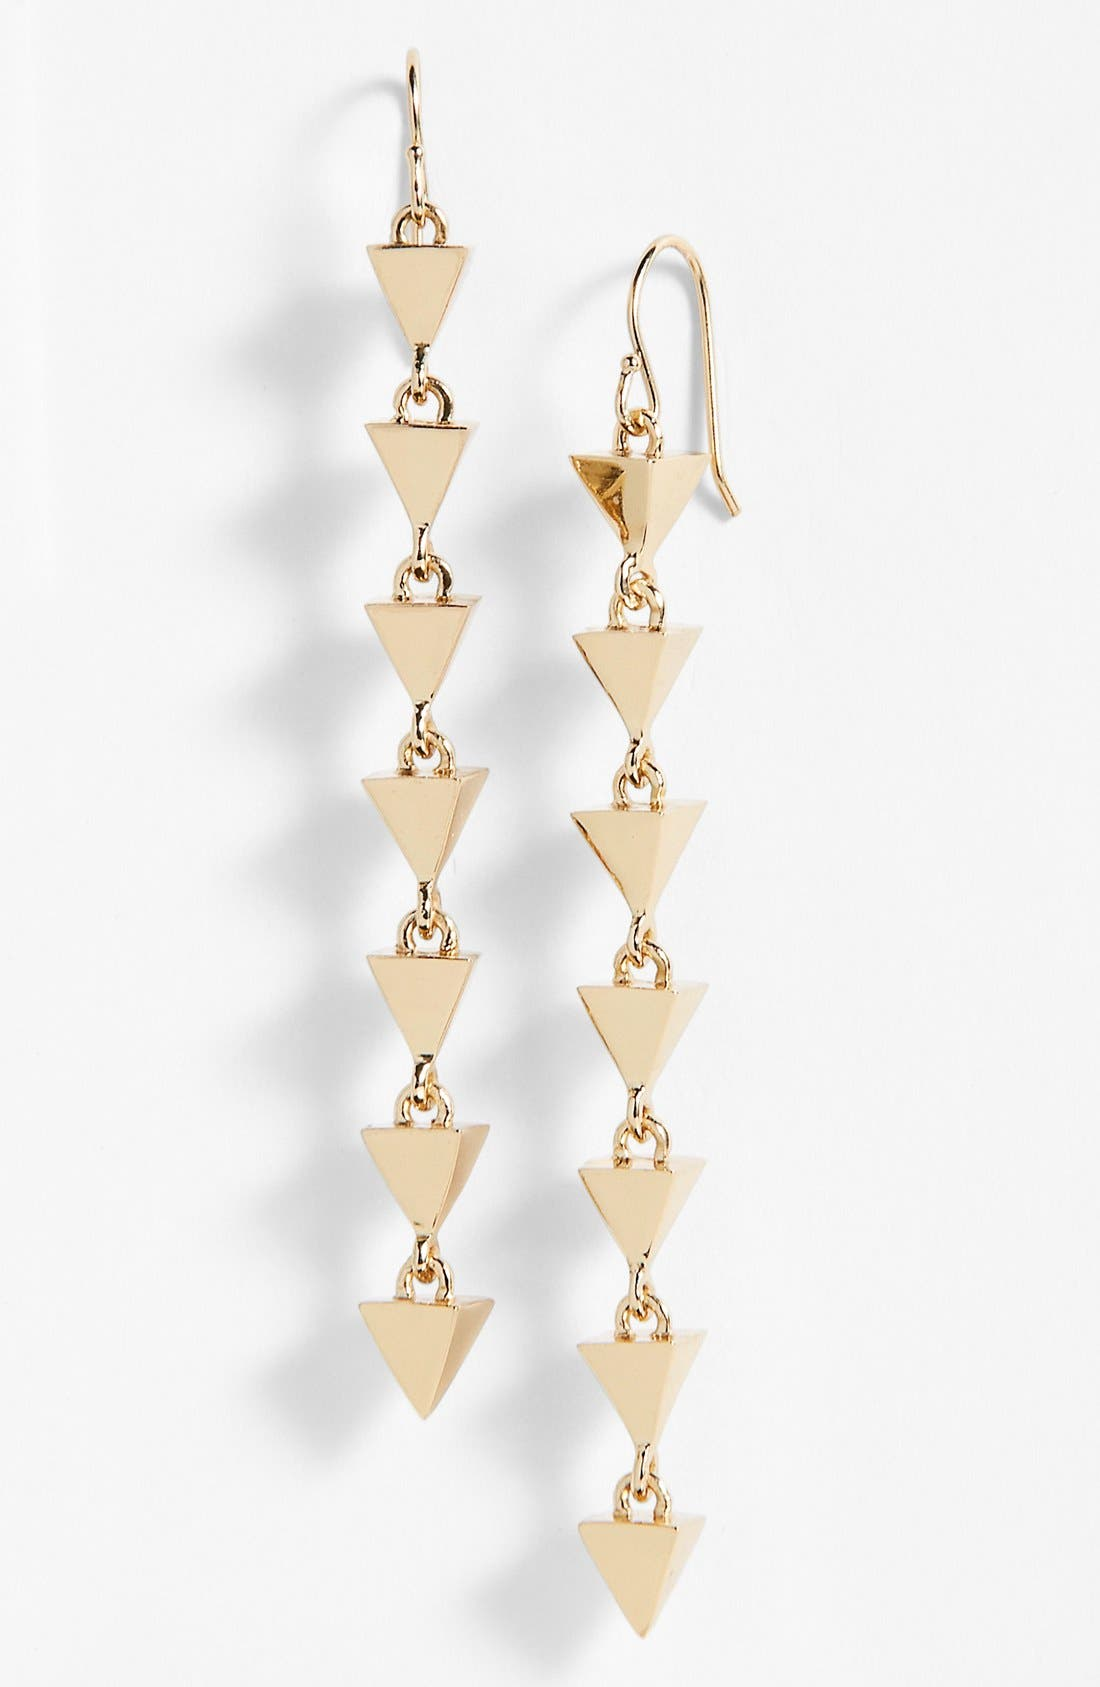 Alternate Image 1 Selected - Melinda Maria 'Pyramid' Linear Earrings